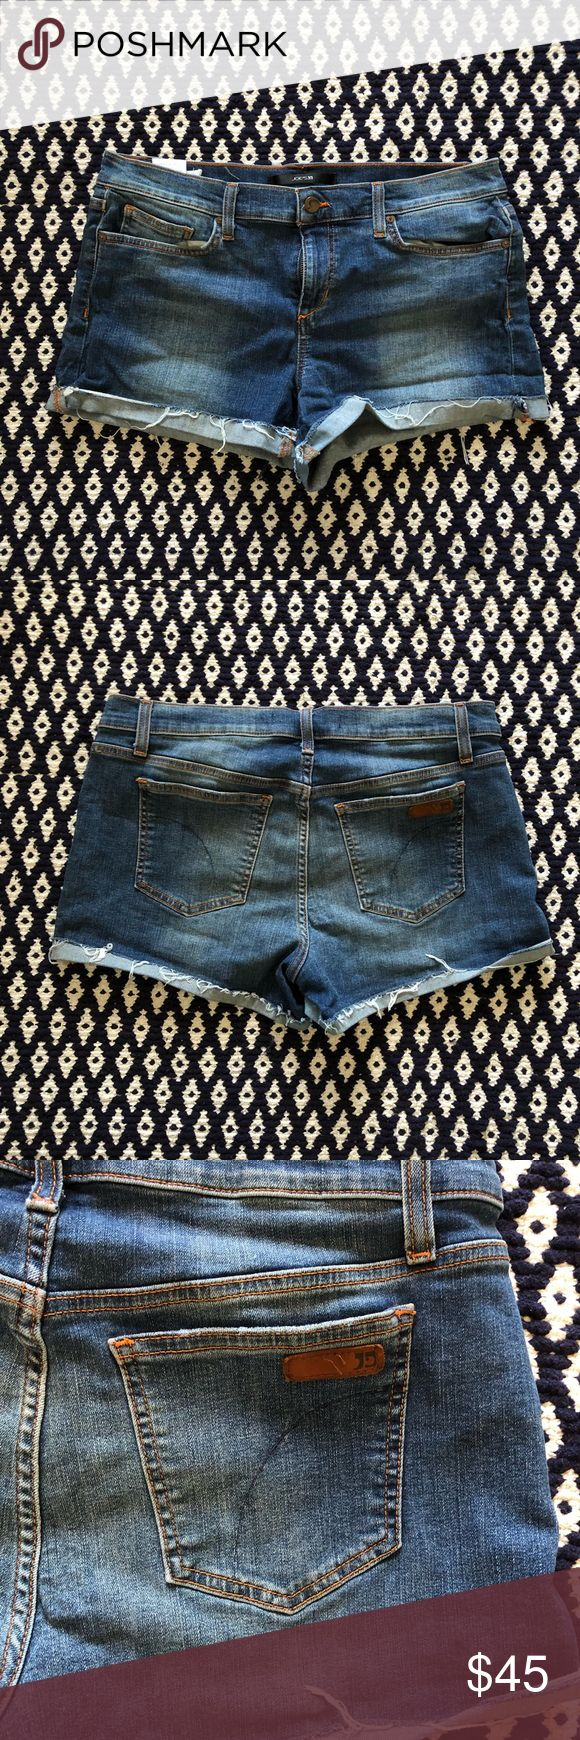 Joe's Jeans cutoff shorts Classic Joe's Jeans cutoff jean shorts with signature design on back pocket. Perfect boyfriend look, great with a belt to shrink the waist! Joe's Jeans Shorts Jean Shorts